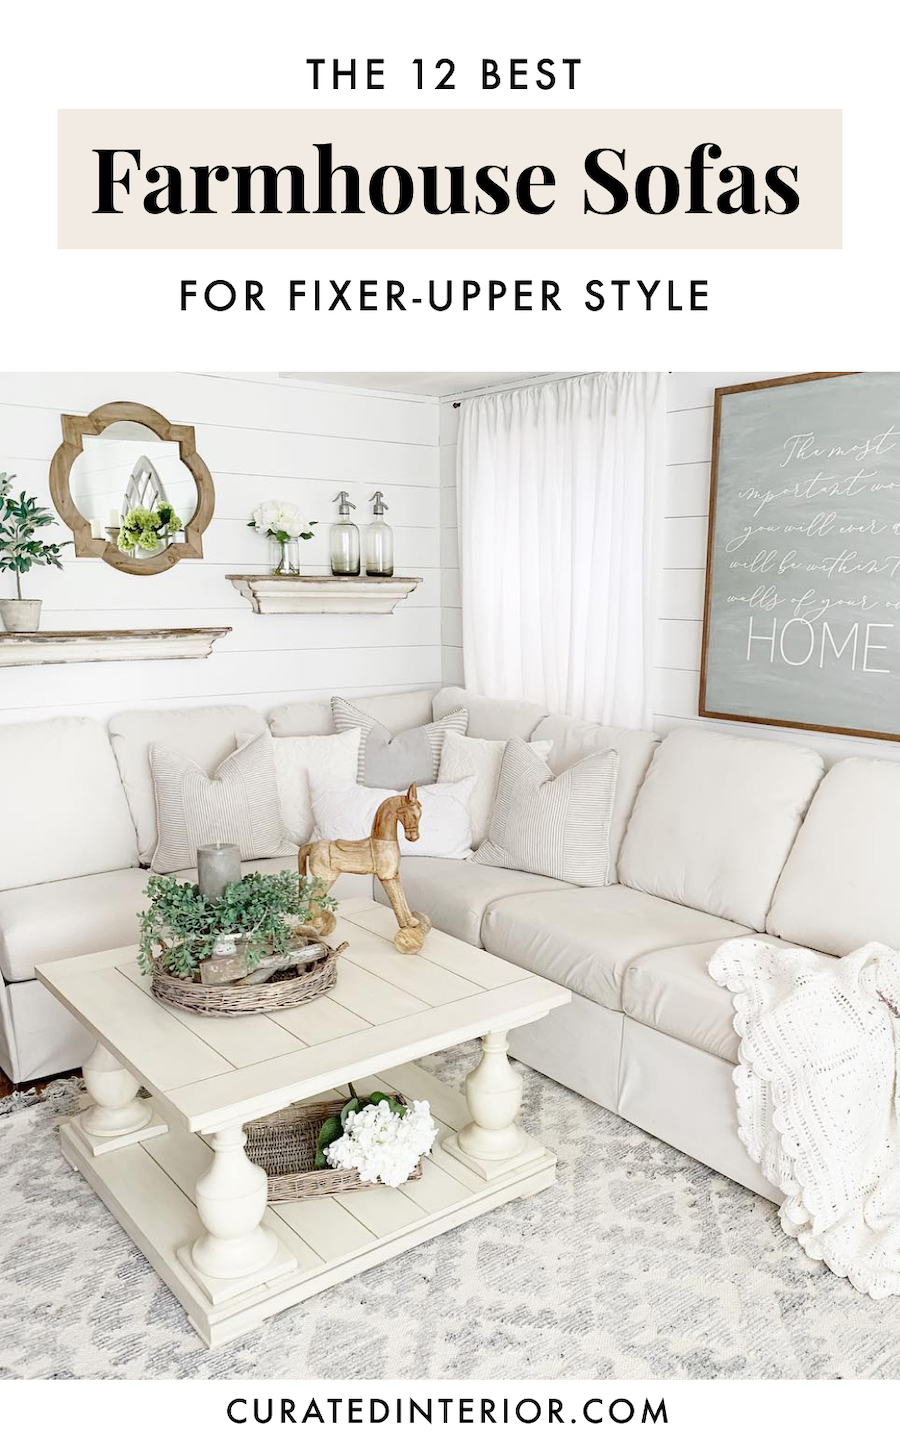 Farmhouse Sofas for Fixer-Upper Style